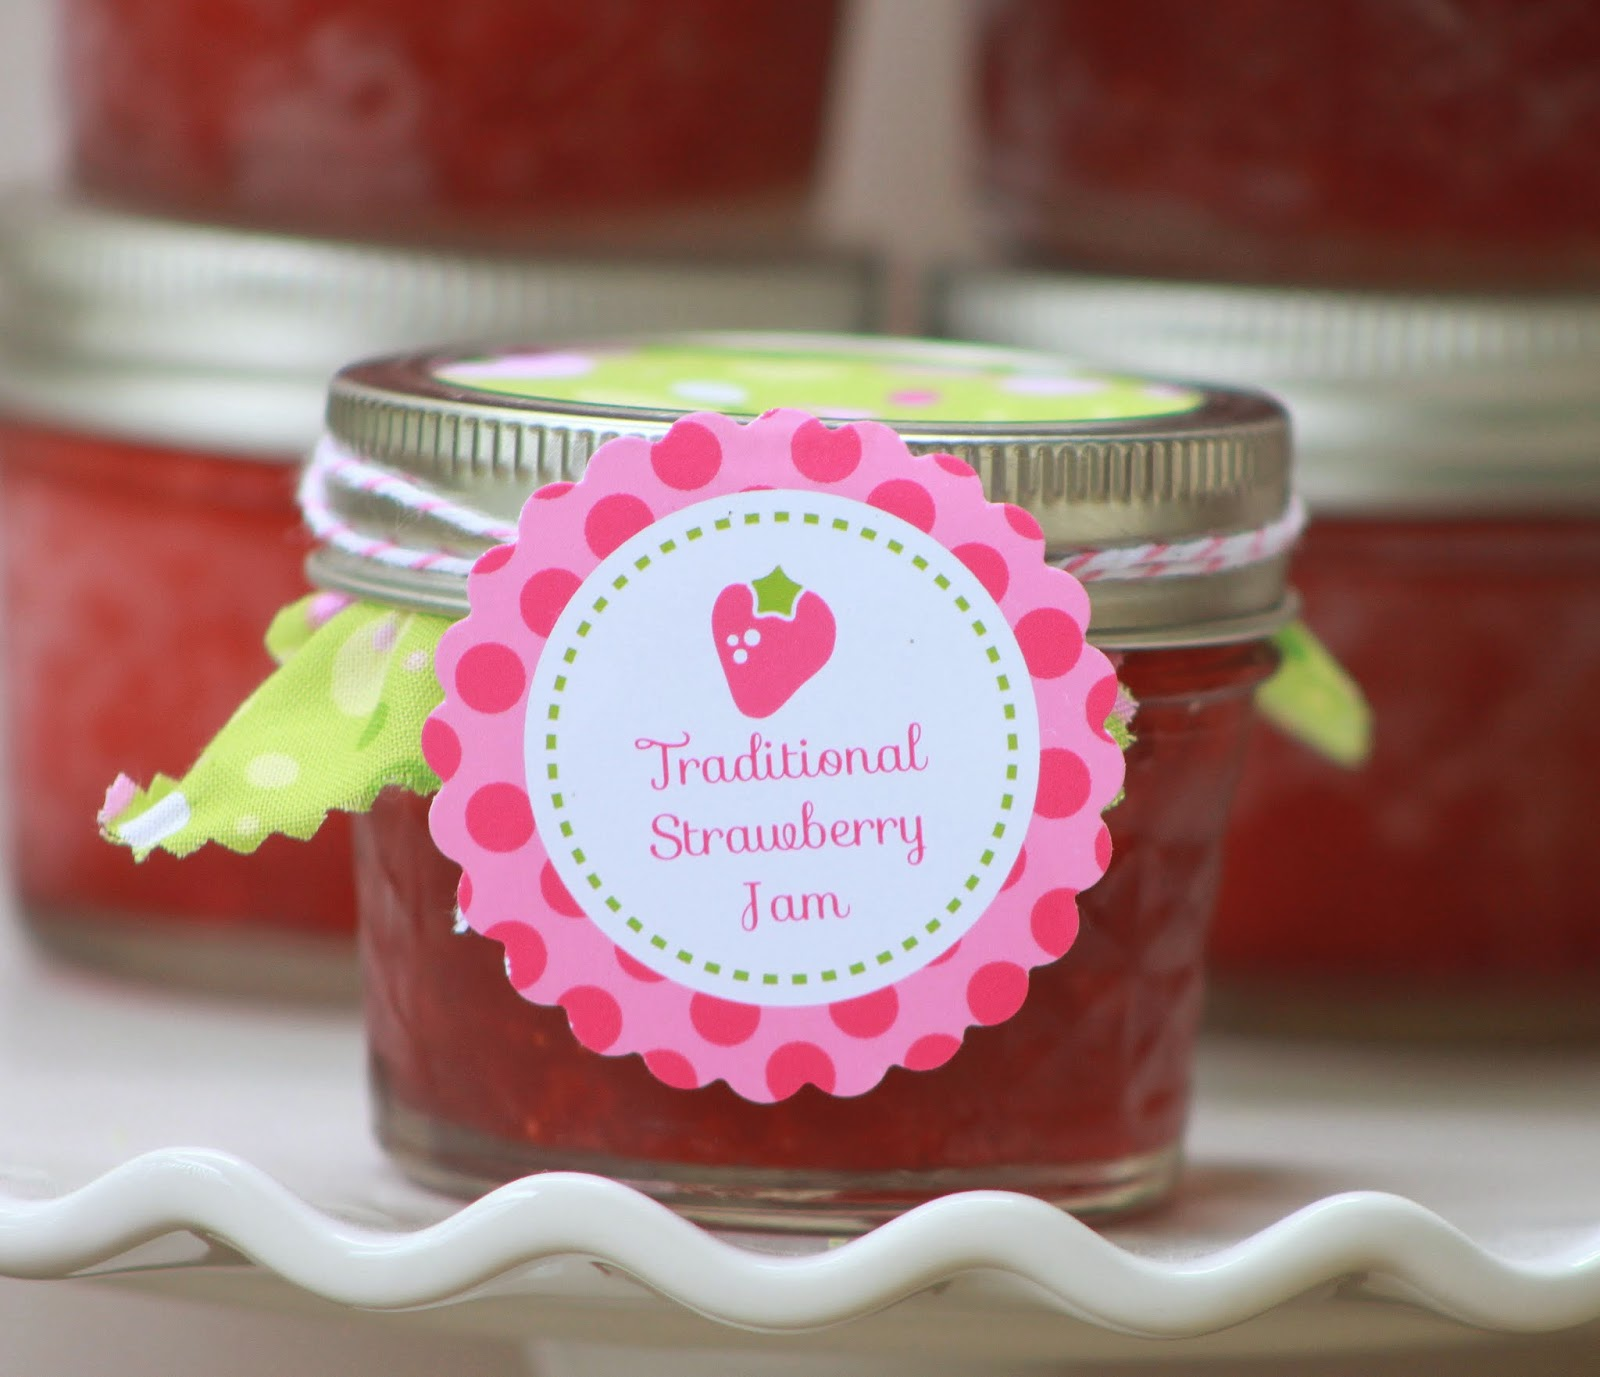 Recipes} Strawberry Balsamic Jam and Traditional Strawberry Jam ...